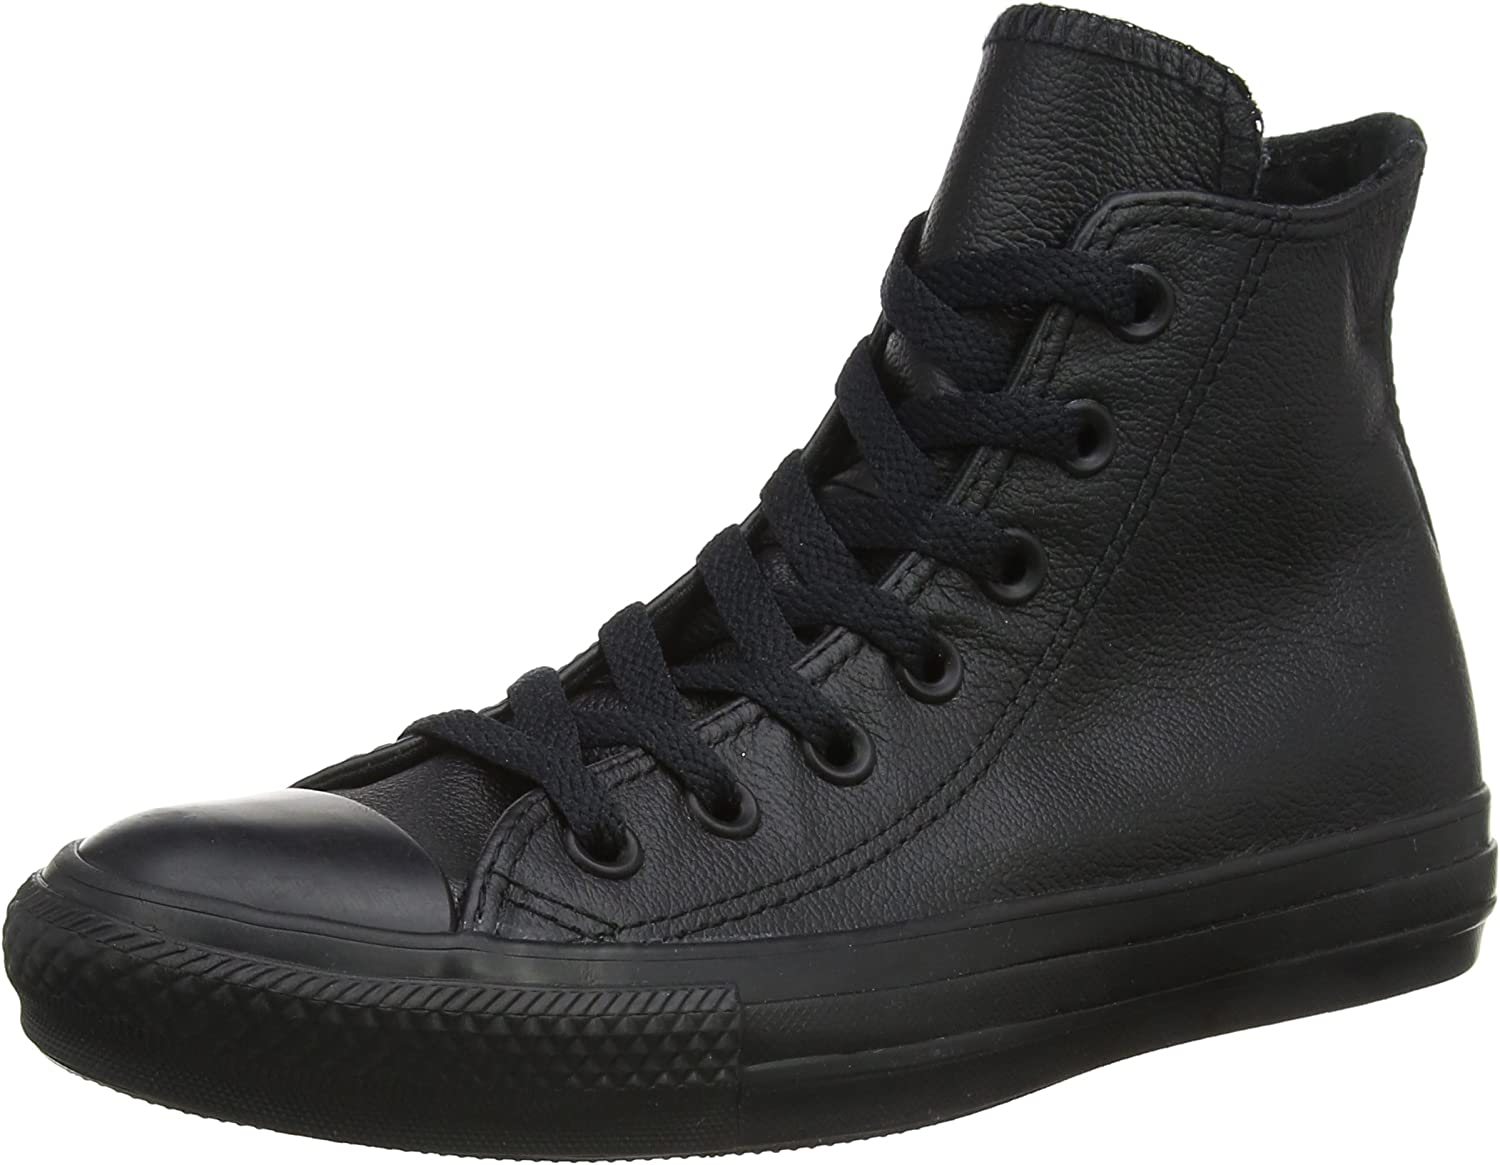 Converse Chuck Taylor Leather High Top